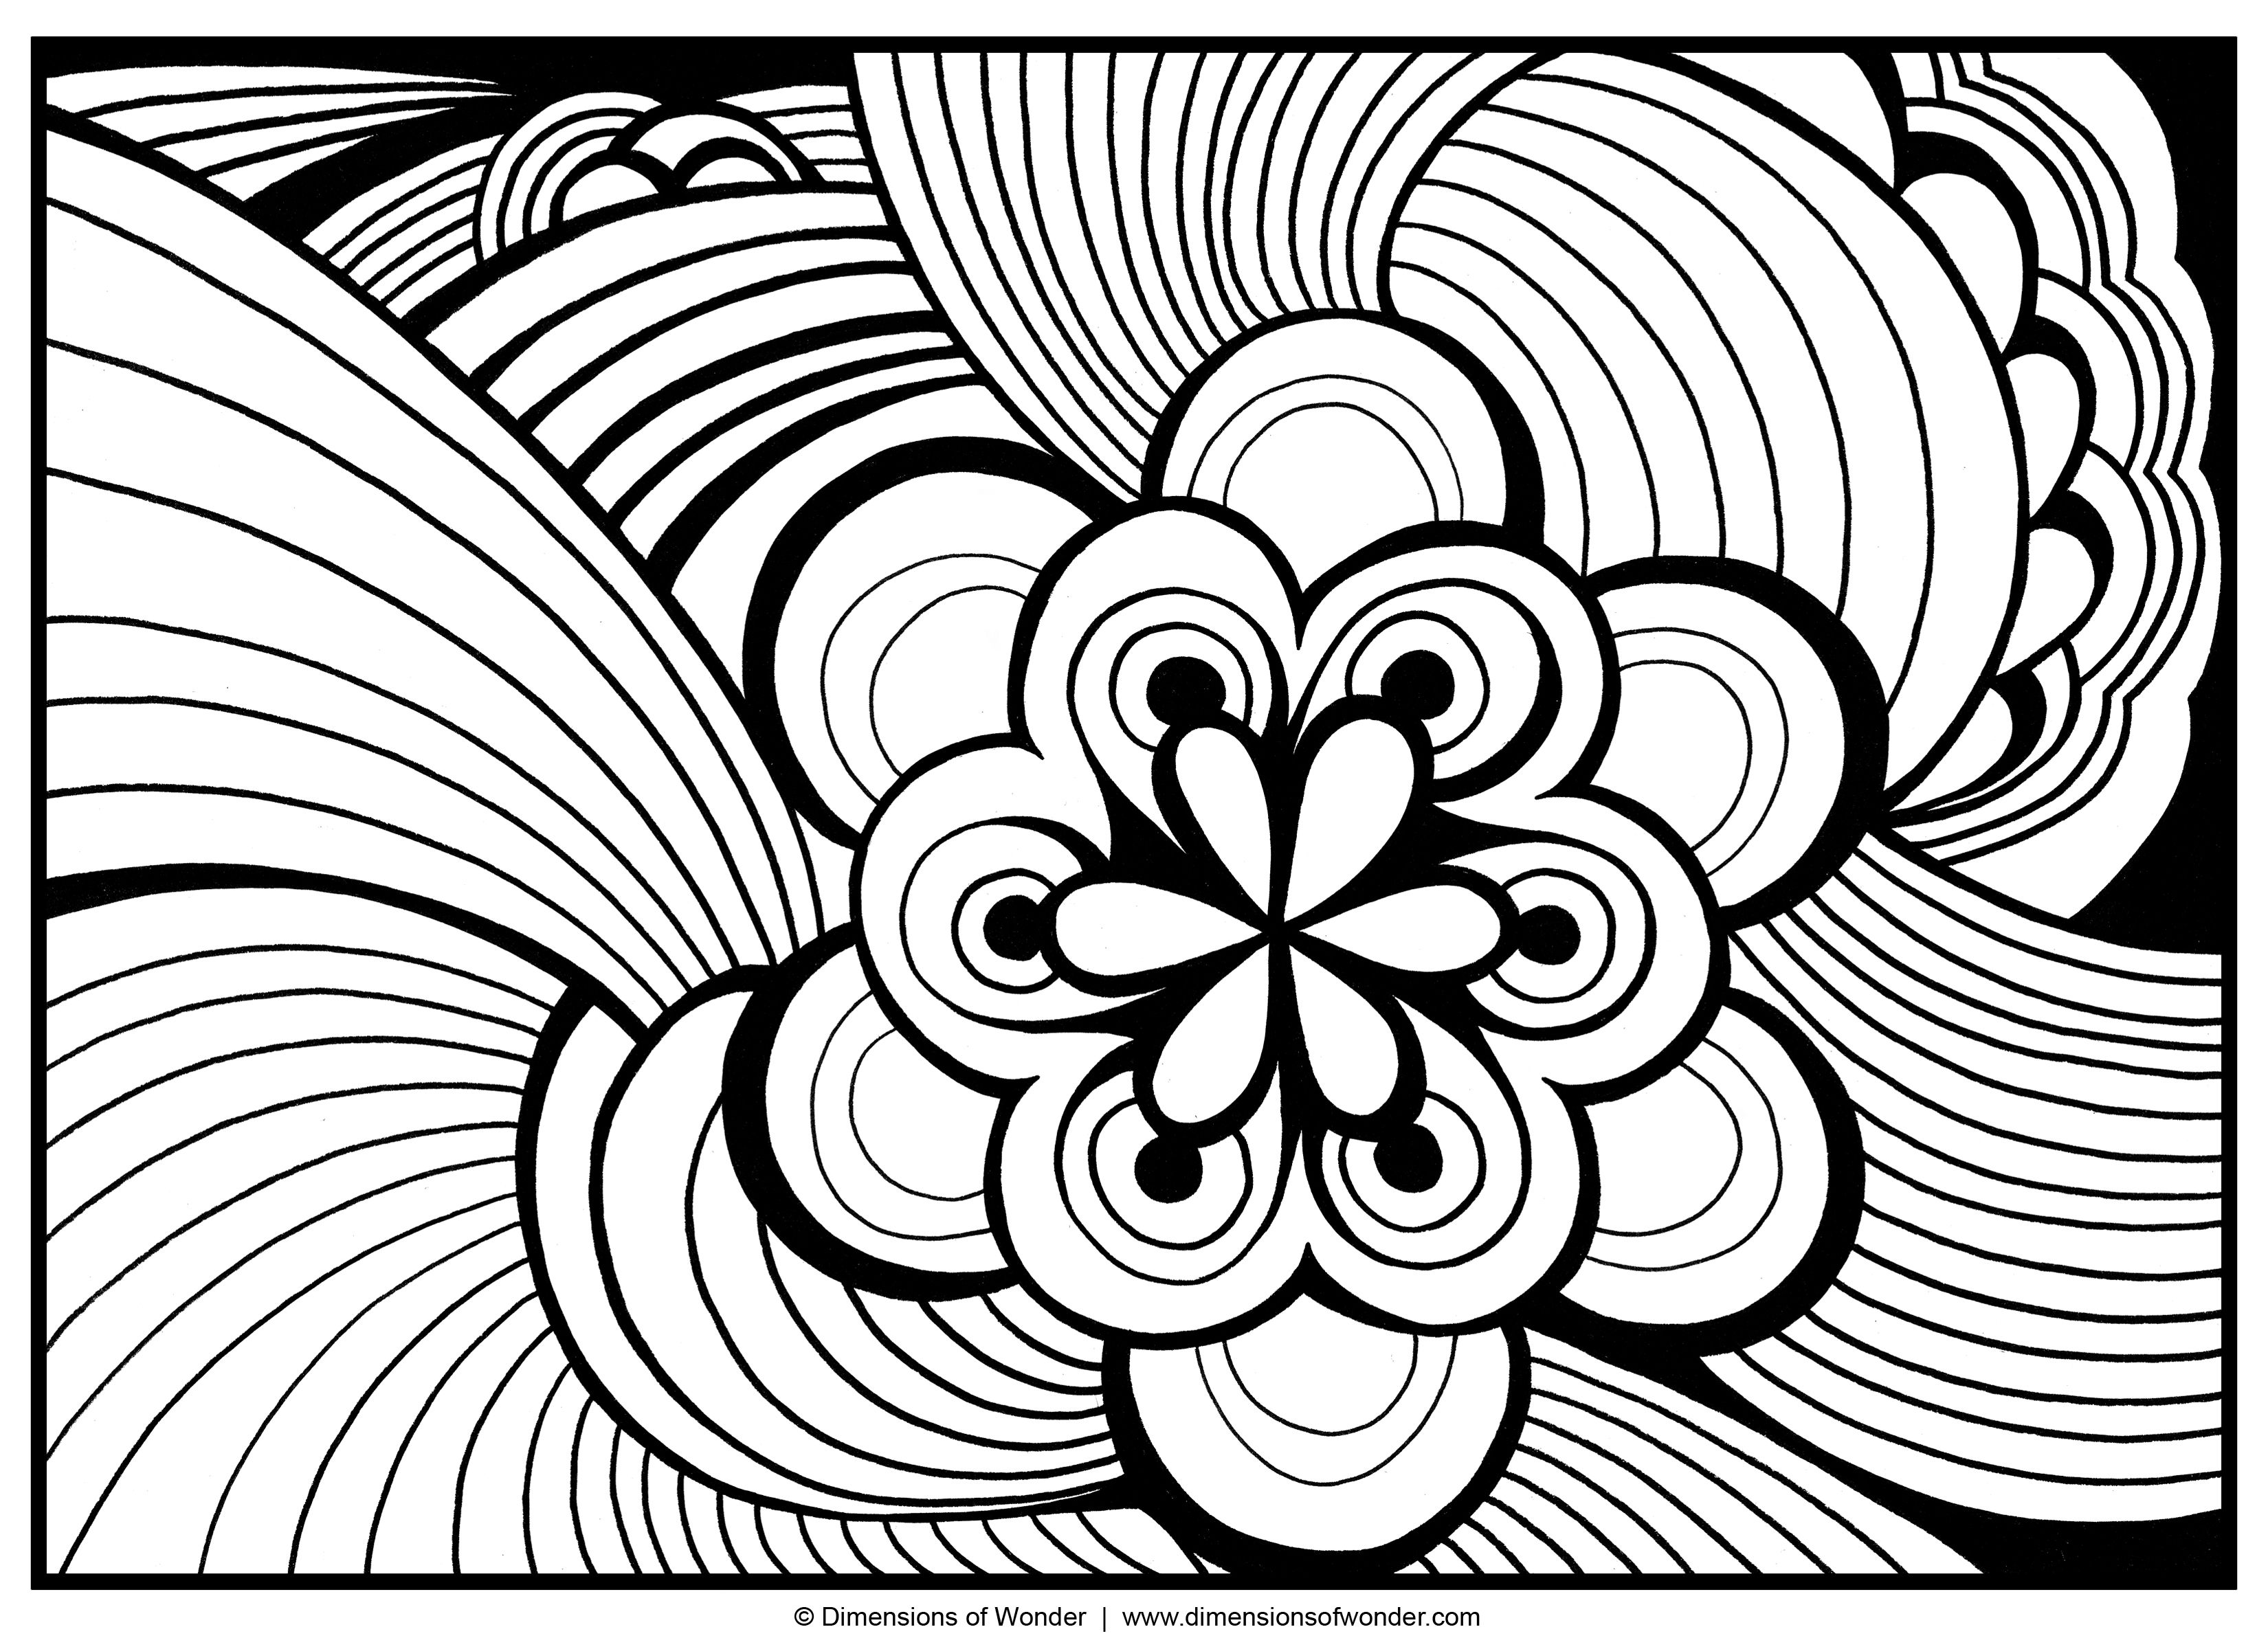 abstract coloring pages free large images - Couloring Sheets